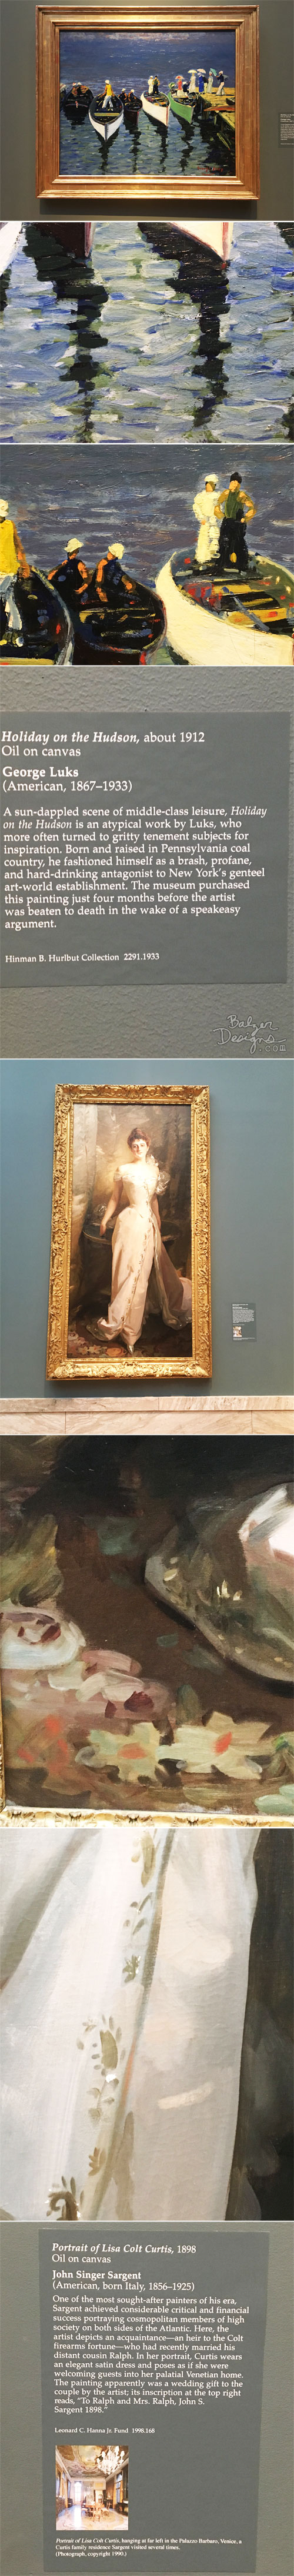 From the Balzer Designs Blog: Cleveland Museum of Art: Part Two